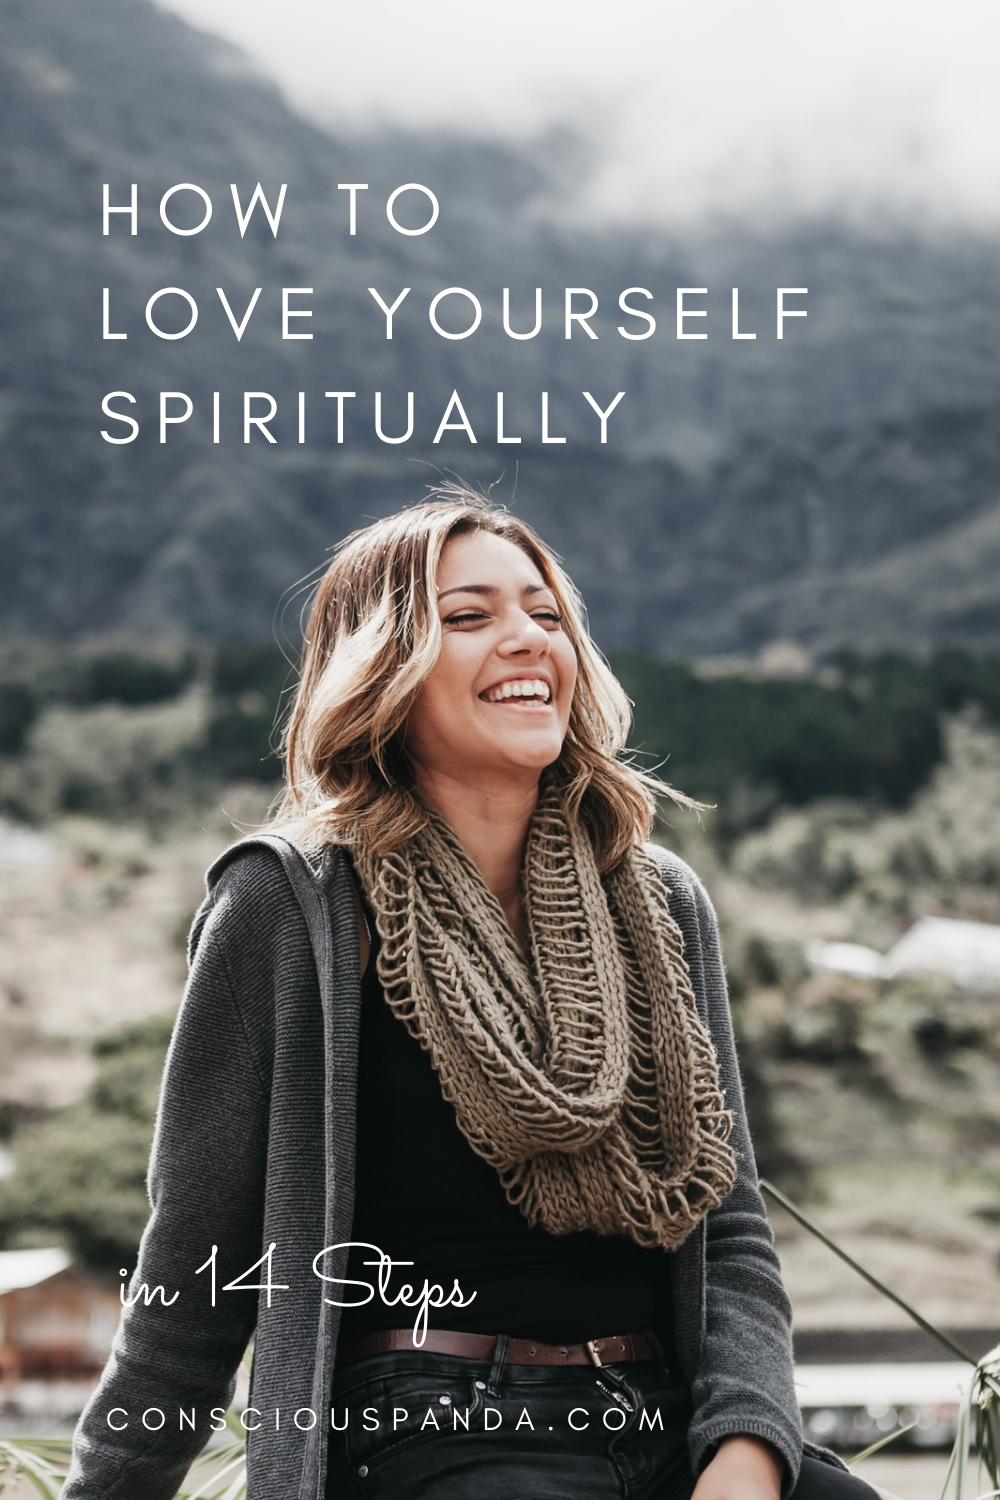 How To Love Yourself Spiritually in 14 Steps